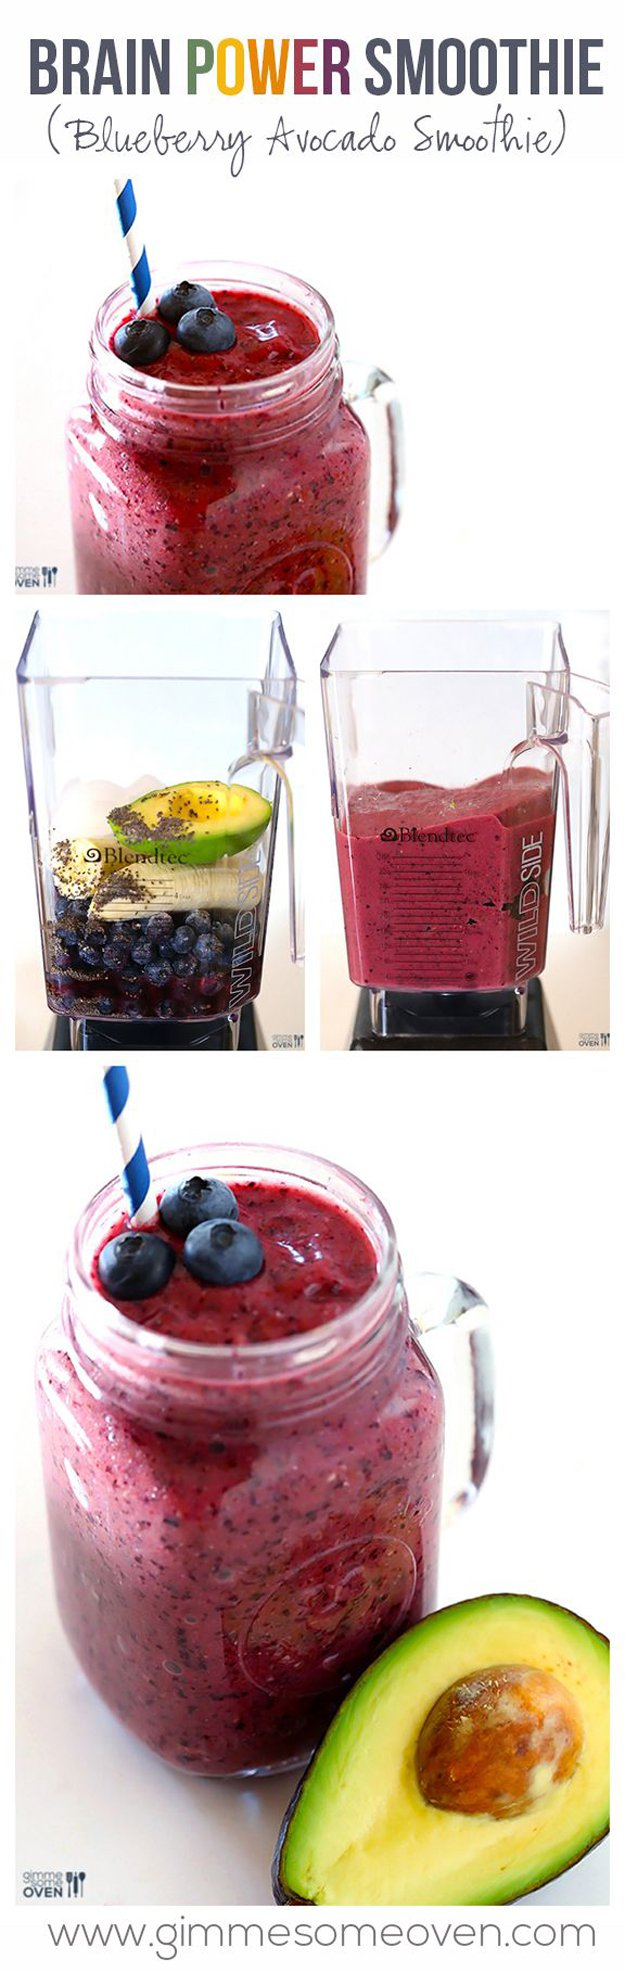 Delicious Detox Smoothie Recipe | www.diyprojects.com/13-detox-smoothies-proven-to-boost-your-energy/